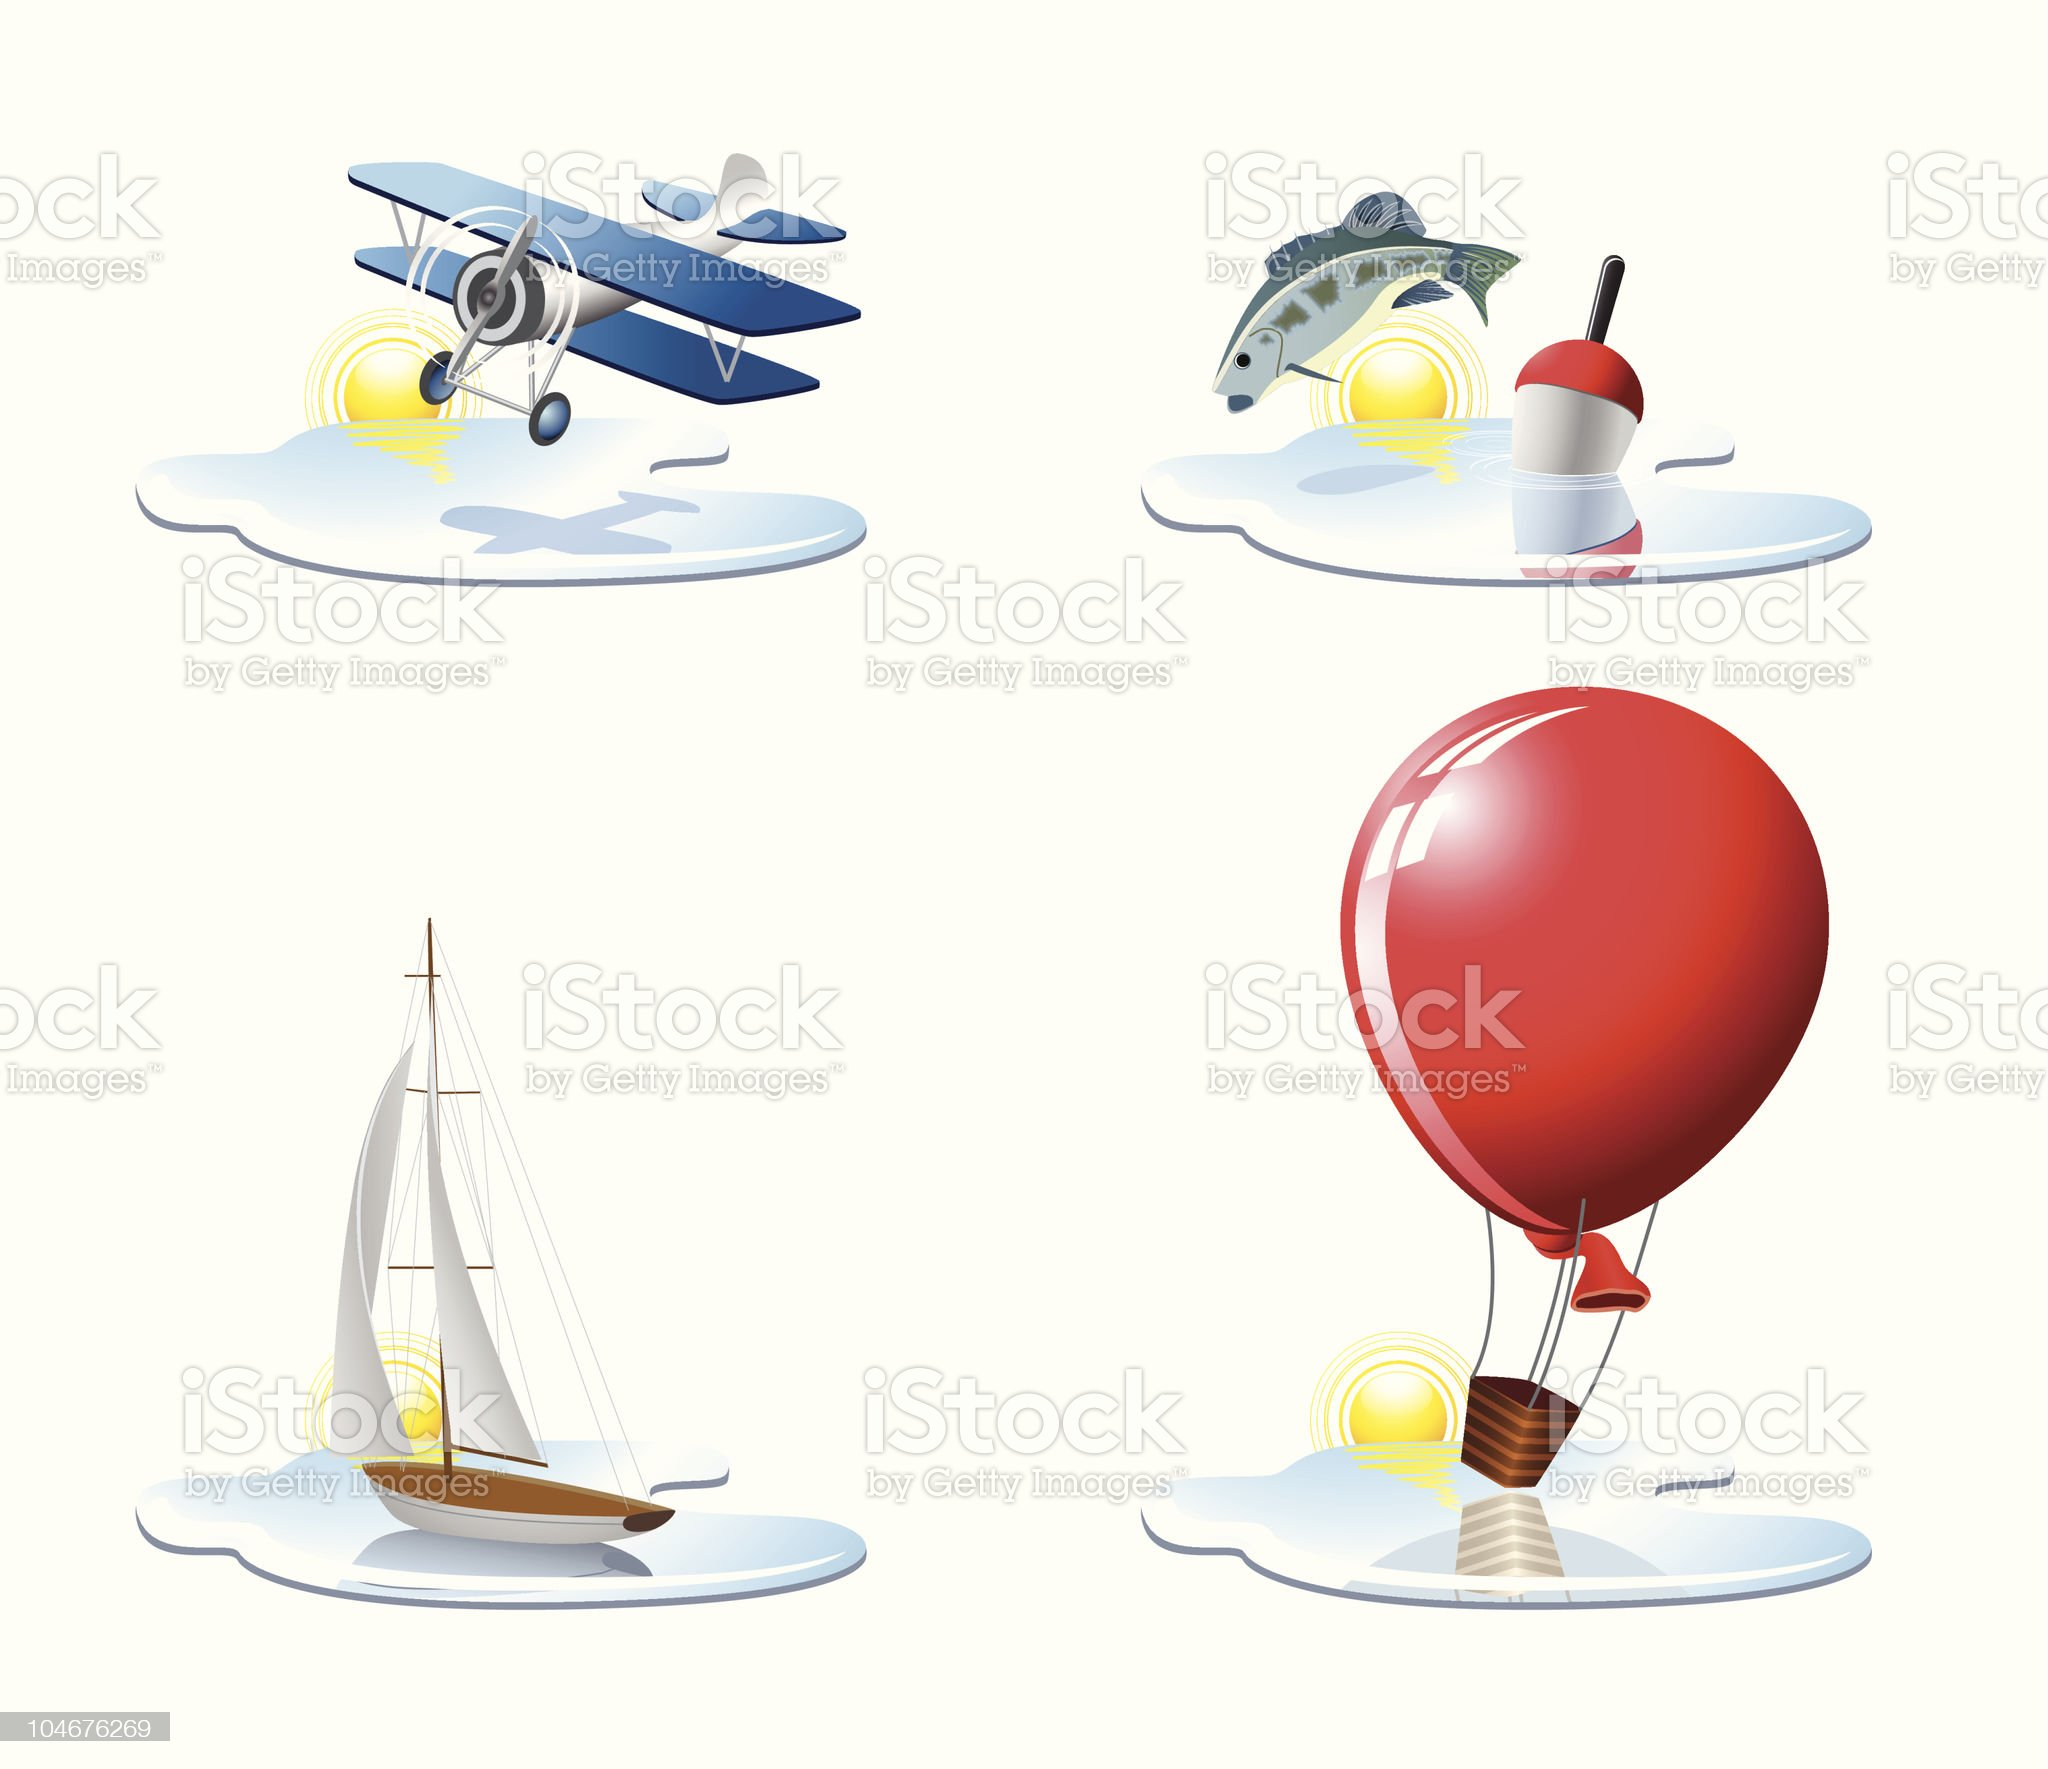 Vacation and travel icons royalty-free stock vector art